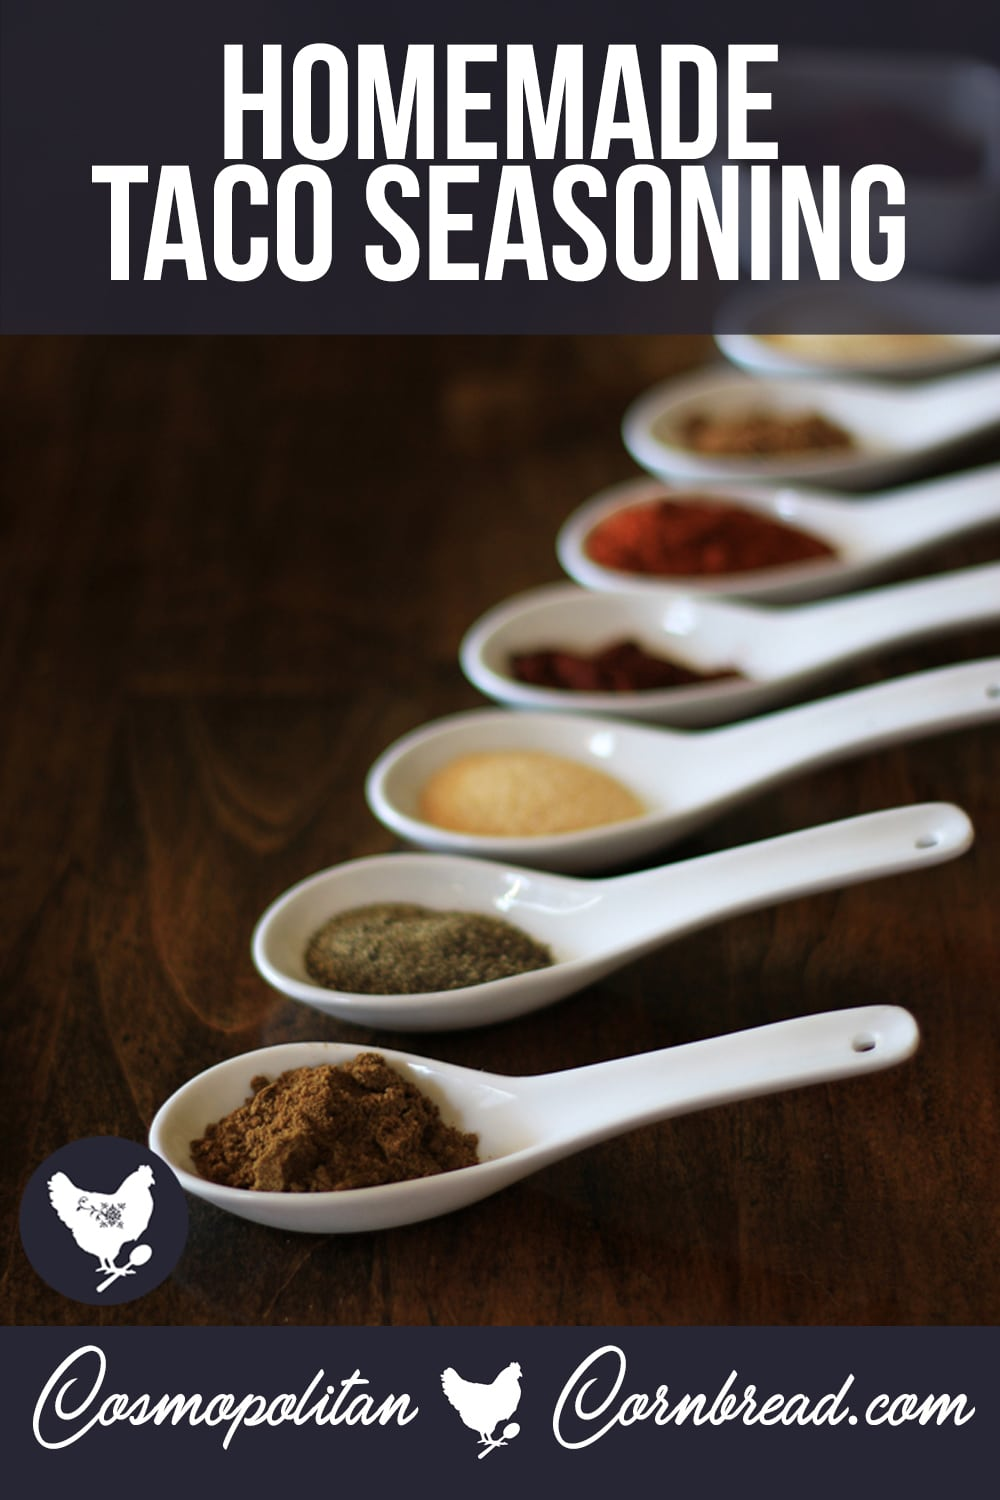 Homemade Taco Seasoning (with Paleo Version)